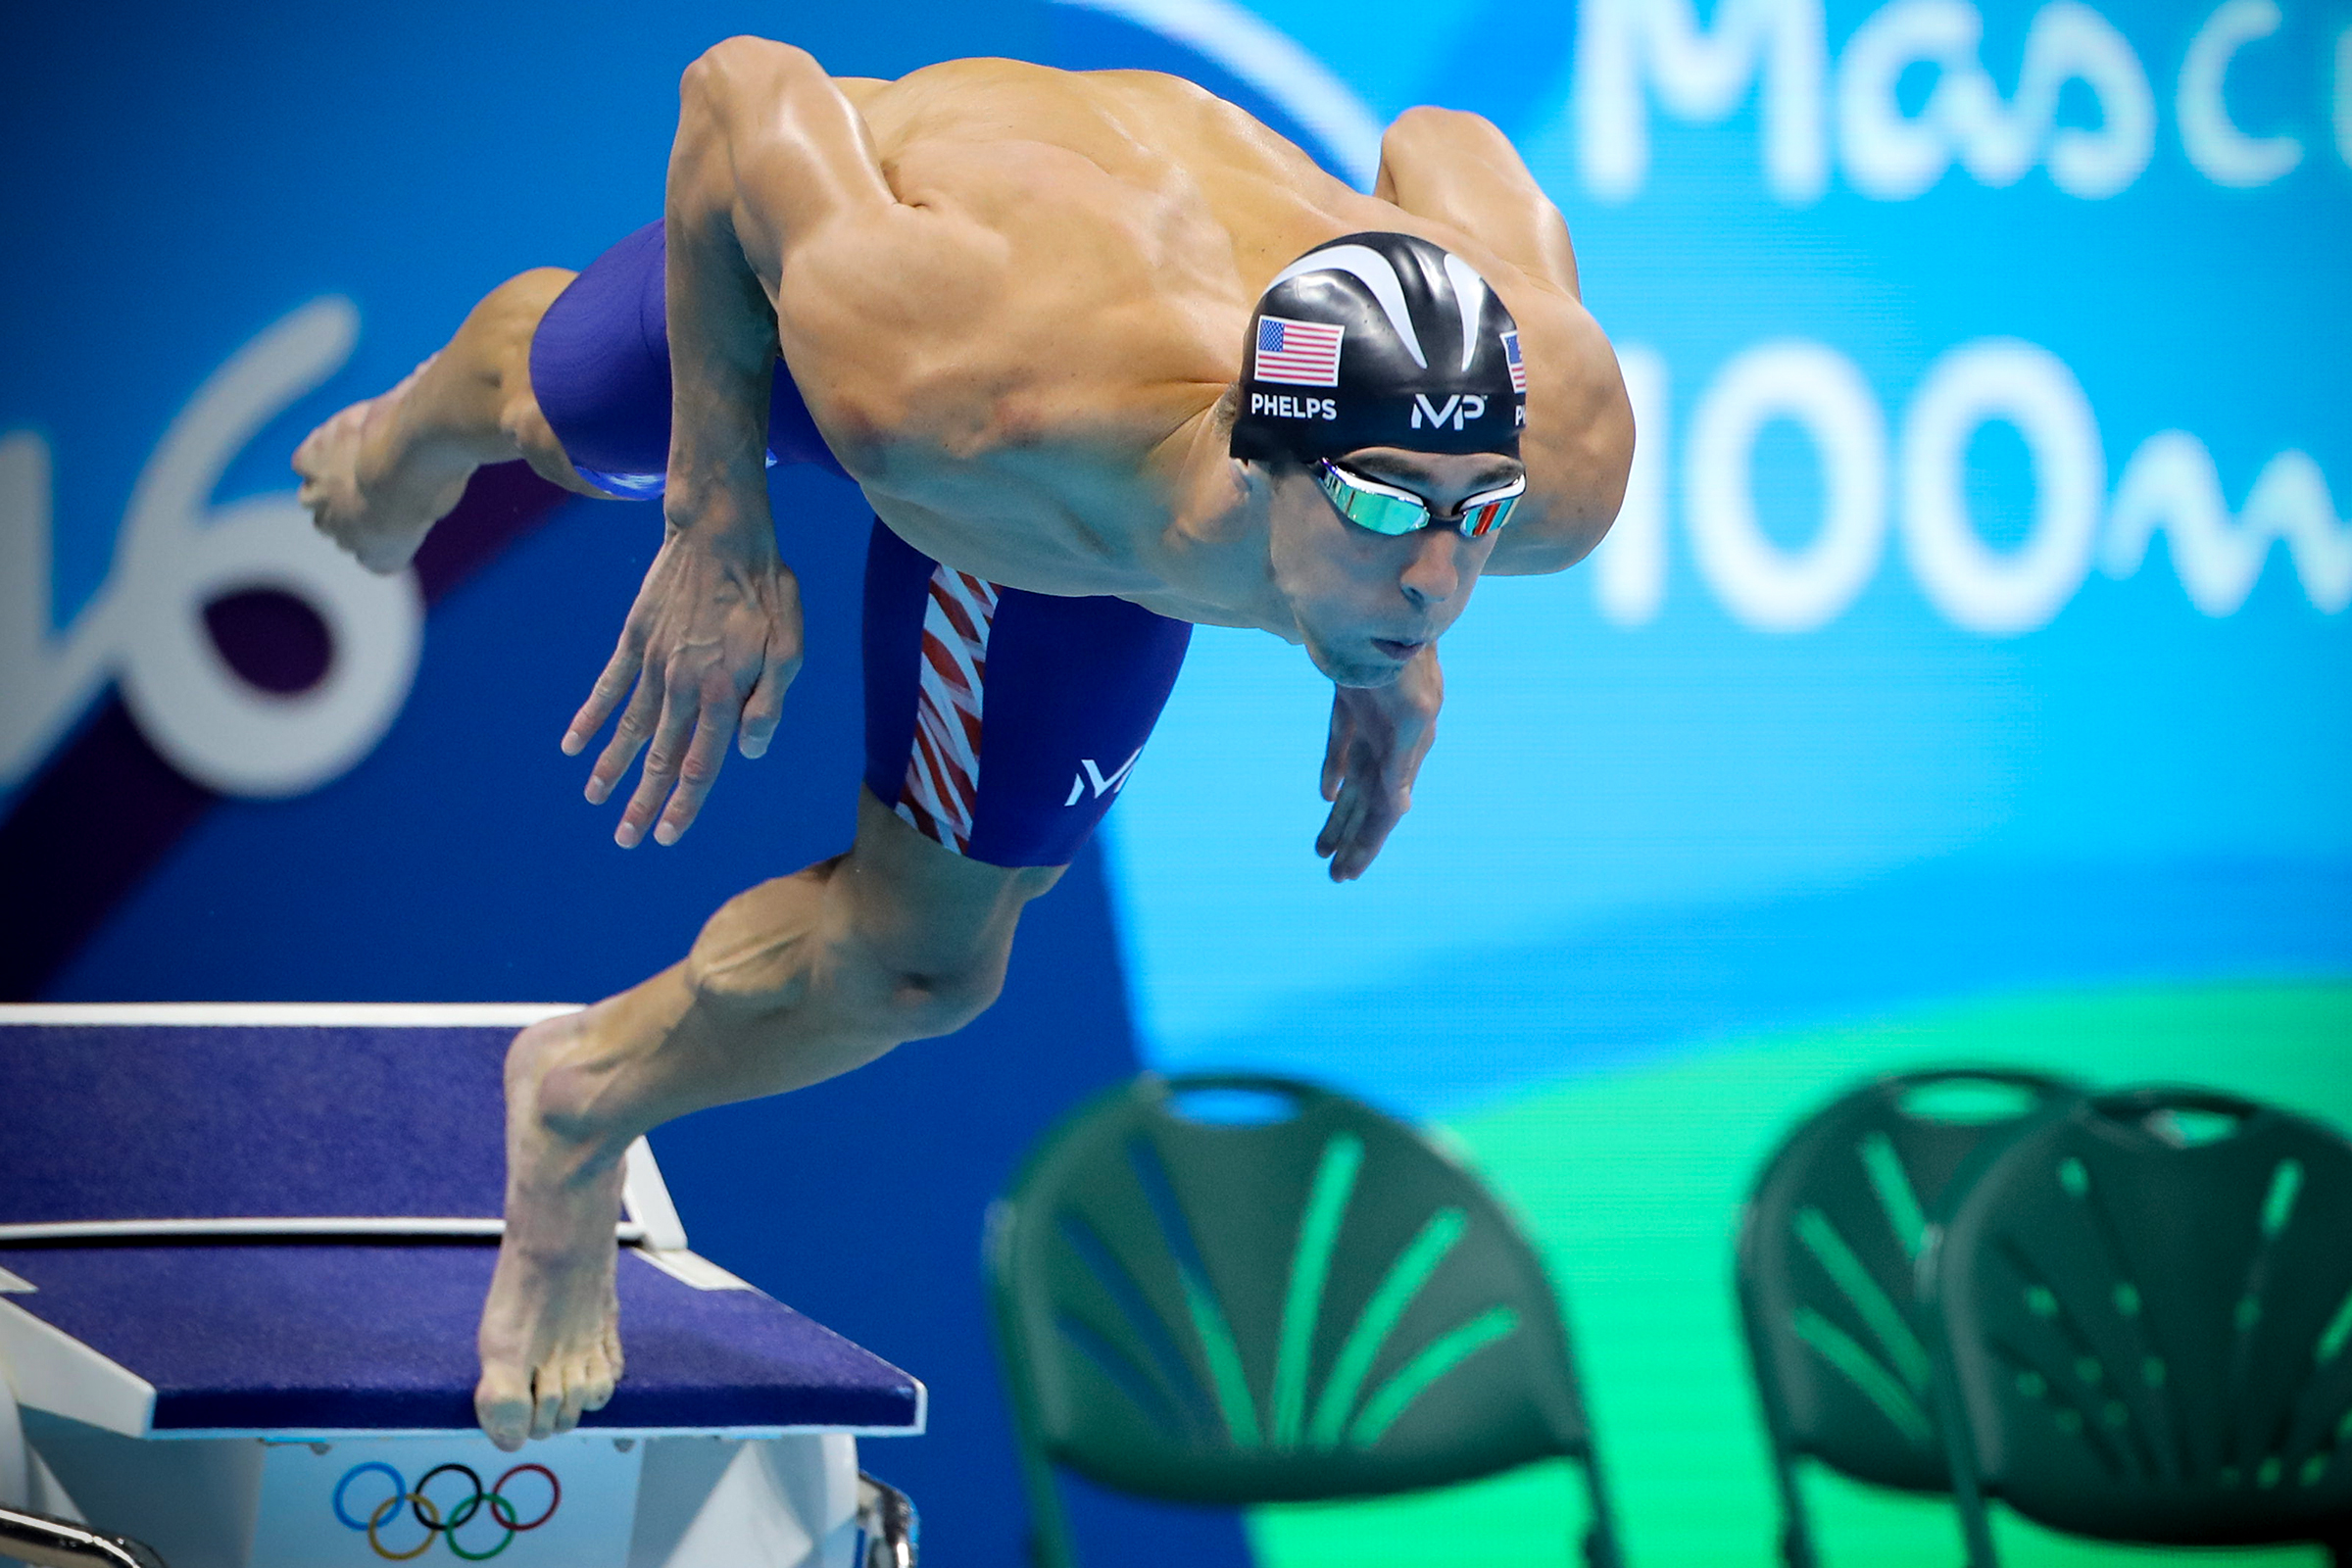 Swimming - Olympics: Day 7  Michael Phelps of the United States dives in at the start of the Men's 100m Butterfly Final during the swimming competition at the Olympic Aquatics Stadium August 12, 2016 in Rio de Janeiro, Brazil. (Photo by Tim Clayton/Corbis via Getty Images)